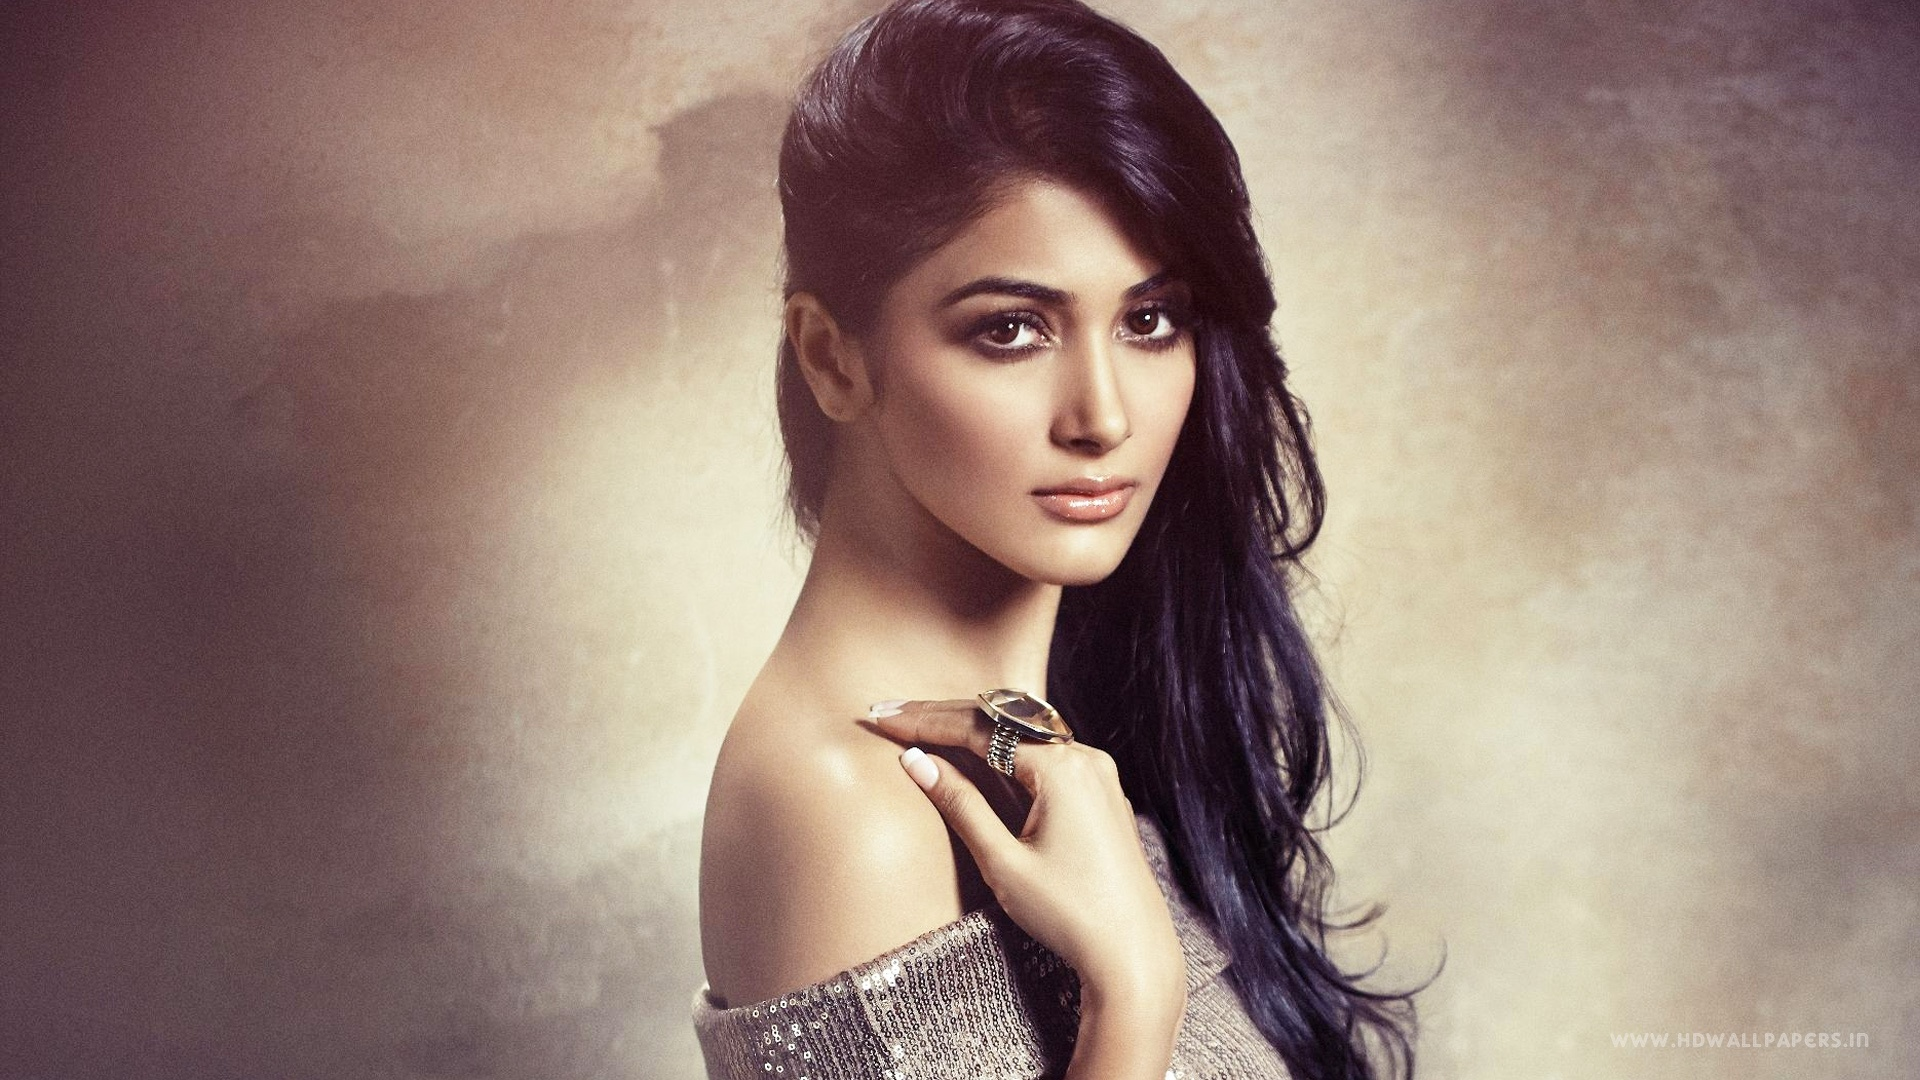 Pooja Hegde Bollywood Actress Wallpapers In Jpg Format For Free Download